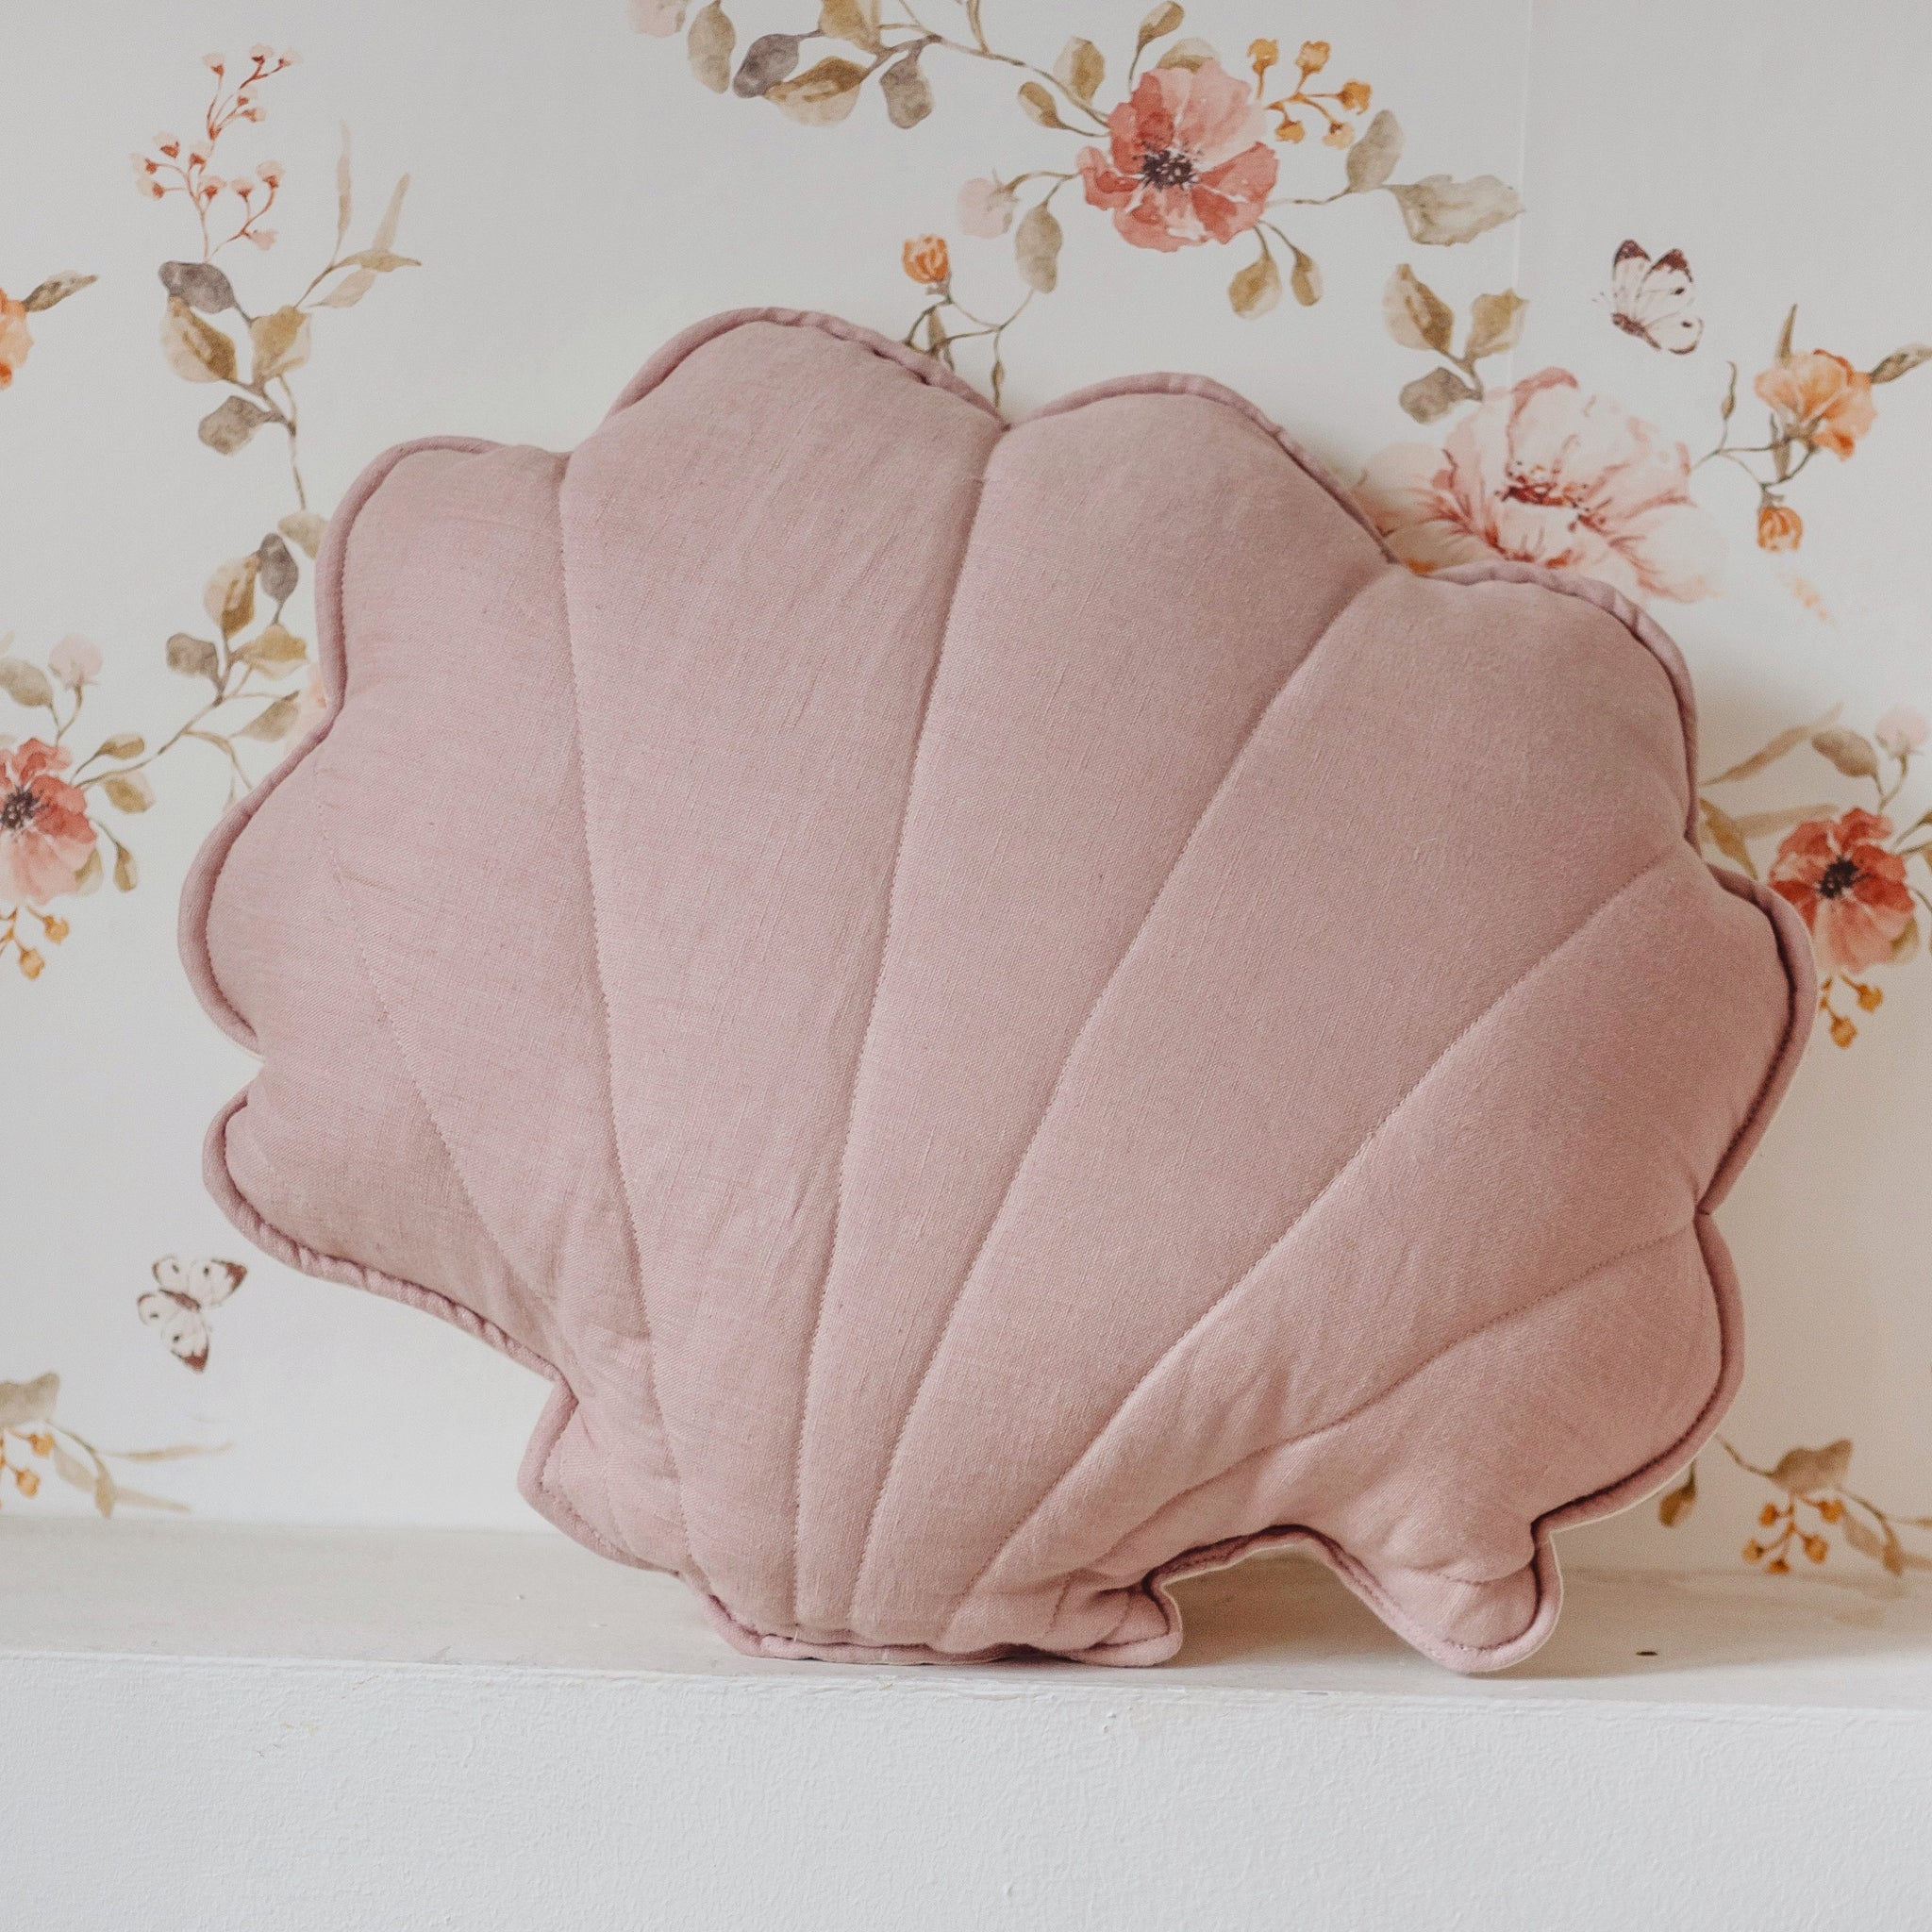 Powder Pink Linen Shell Cushion - The Quirky Home Co